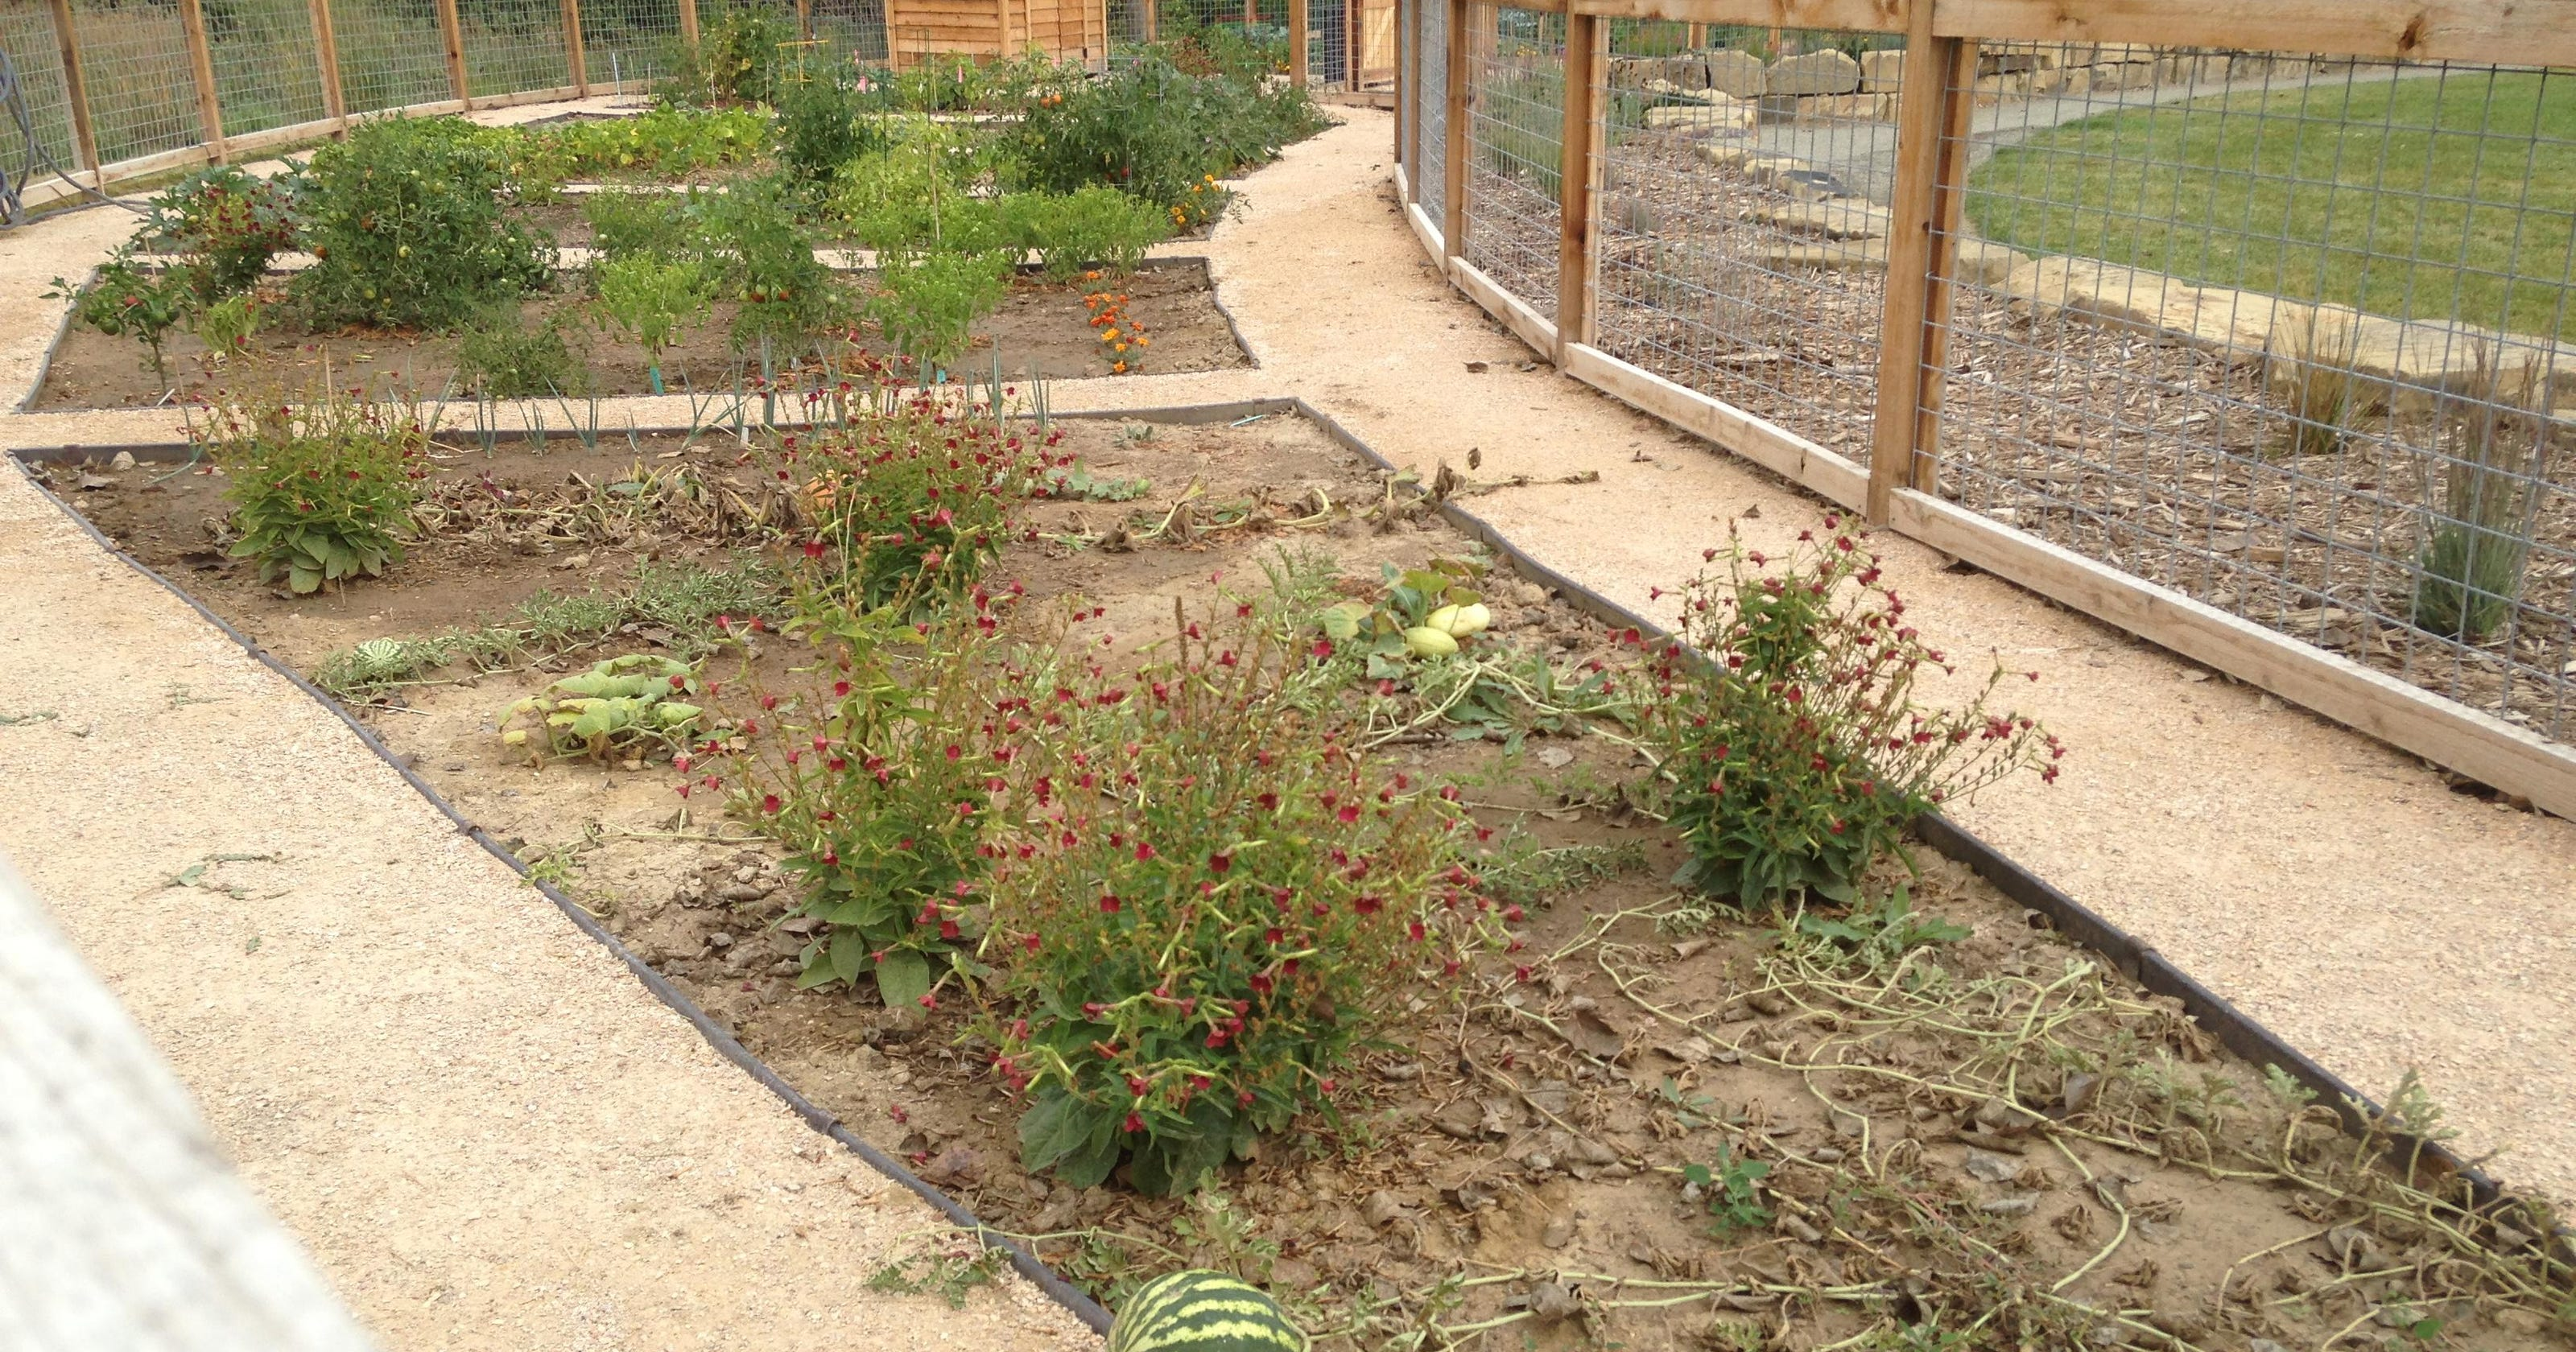 Fort Collins looks to grow more gardens in city parks